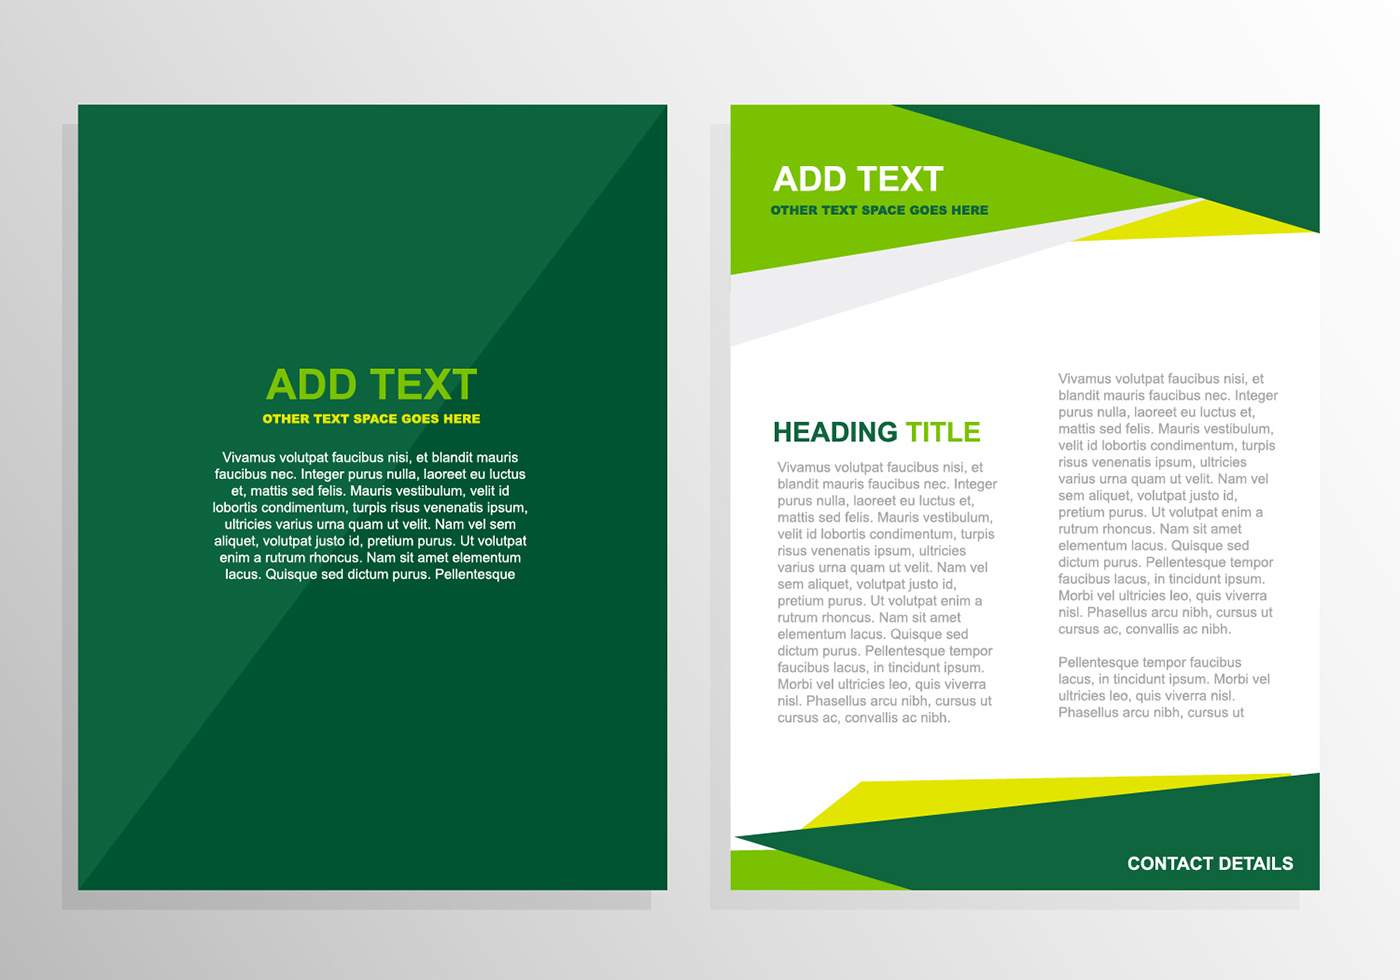 Professional Flipbook Templates to Help You Design